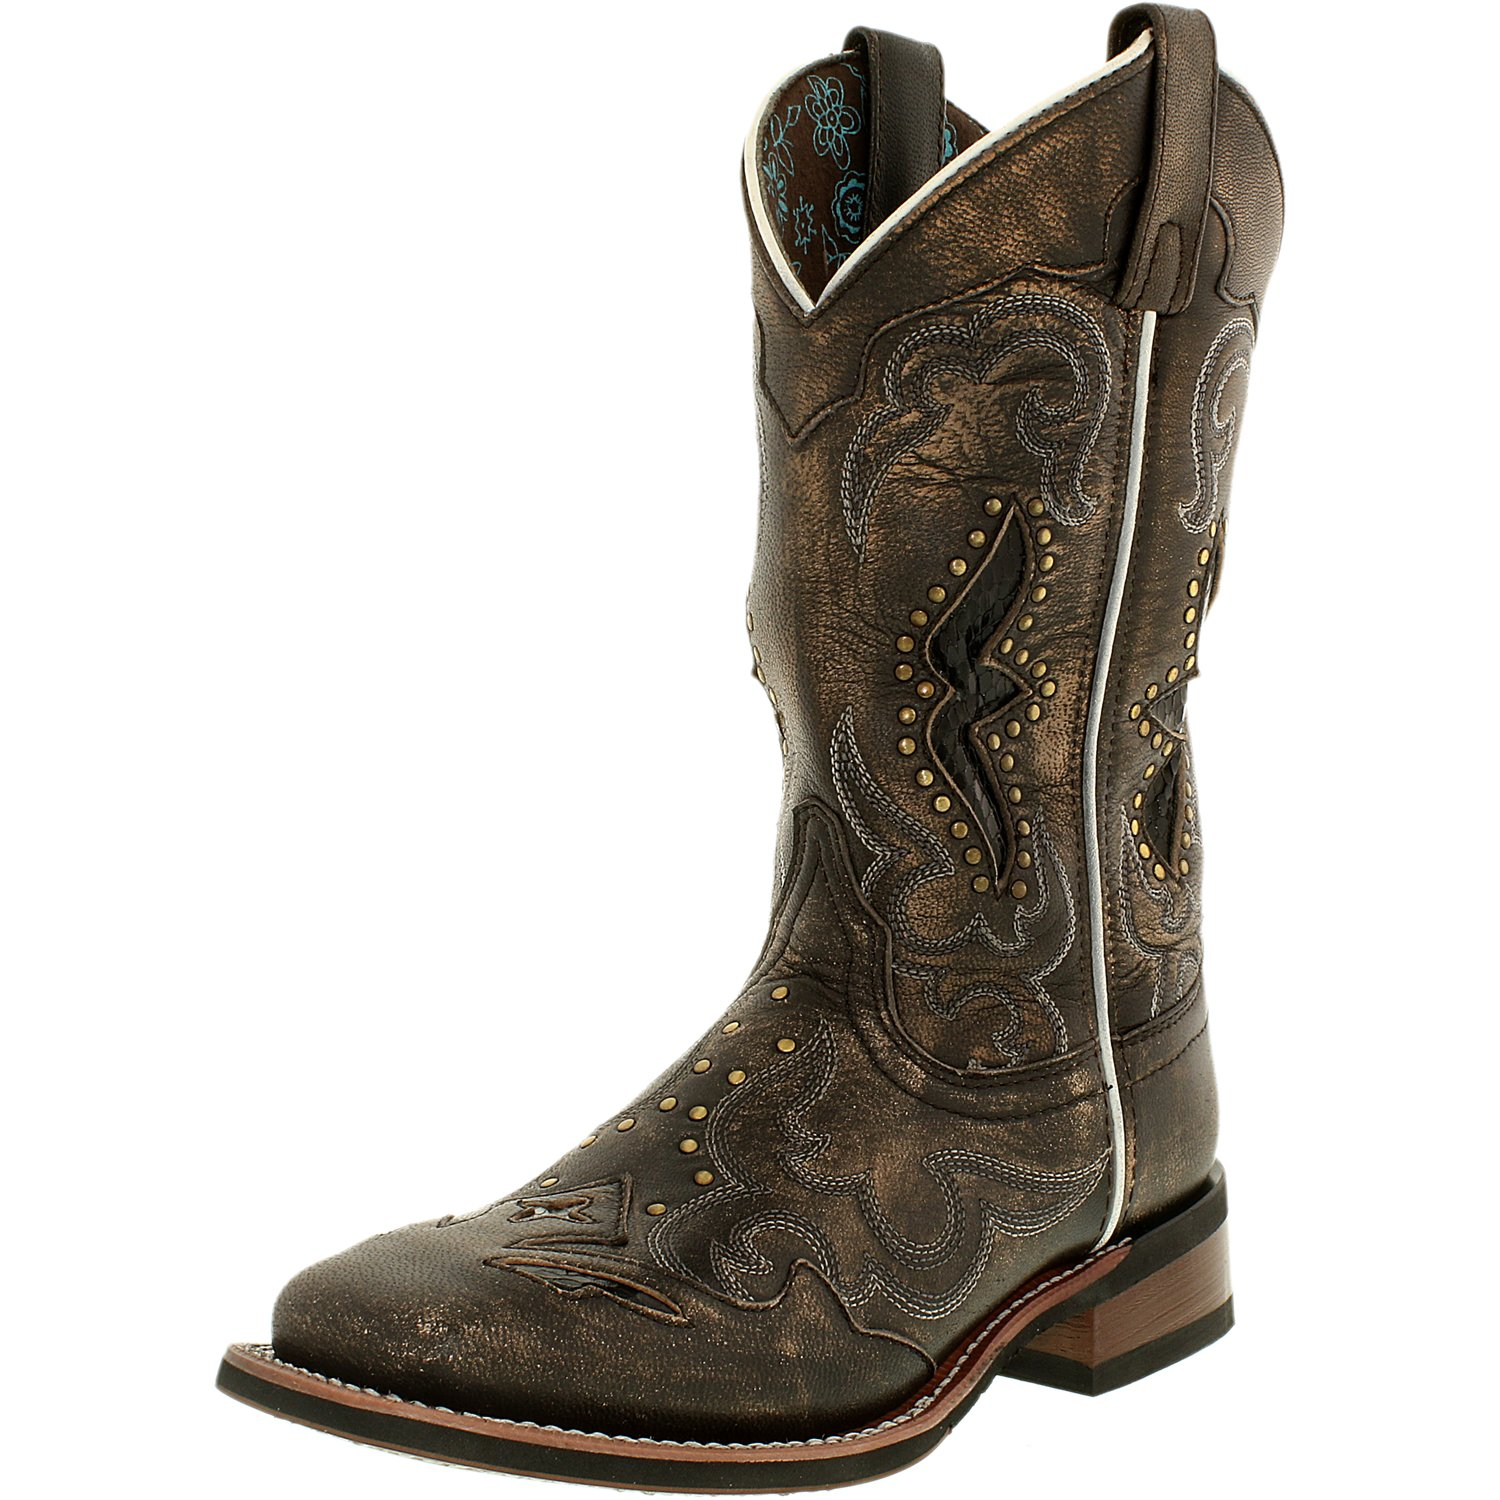 Laredo Women's Spellbound Leather Mid-Calf Leather Boot by Laredo